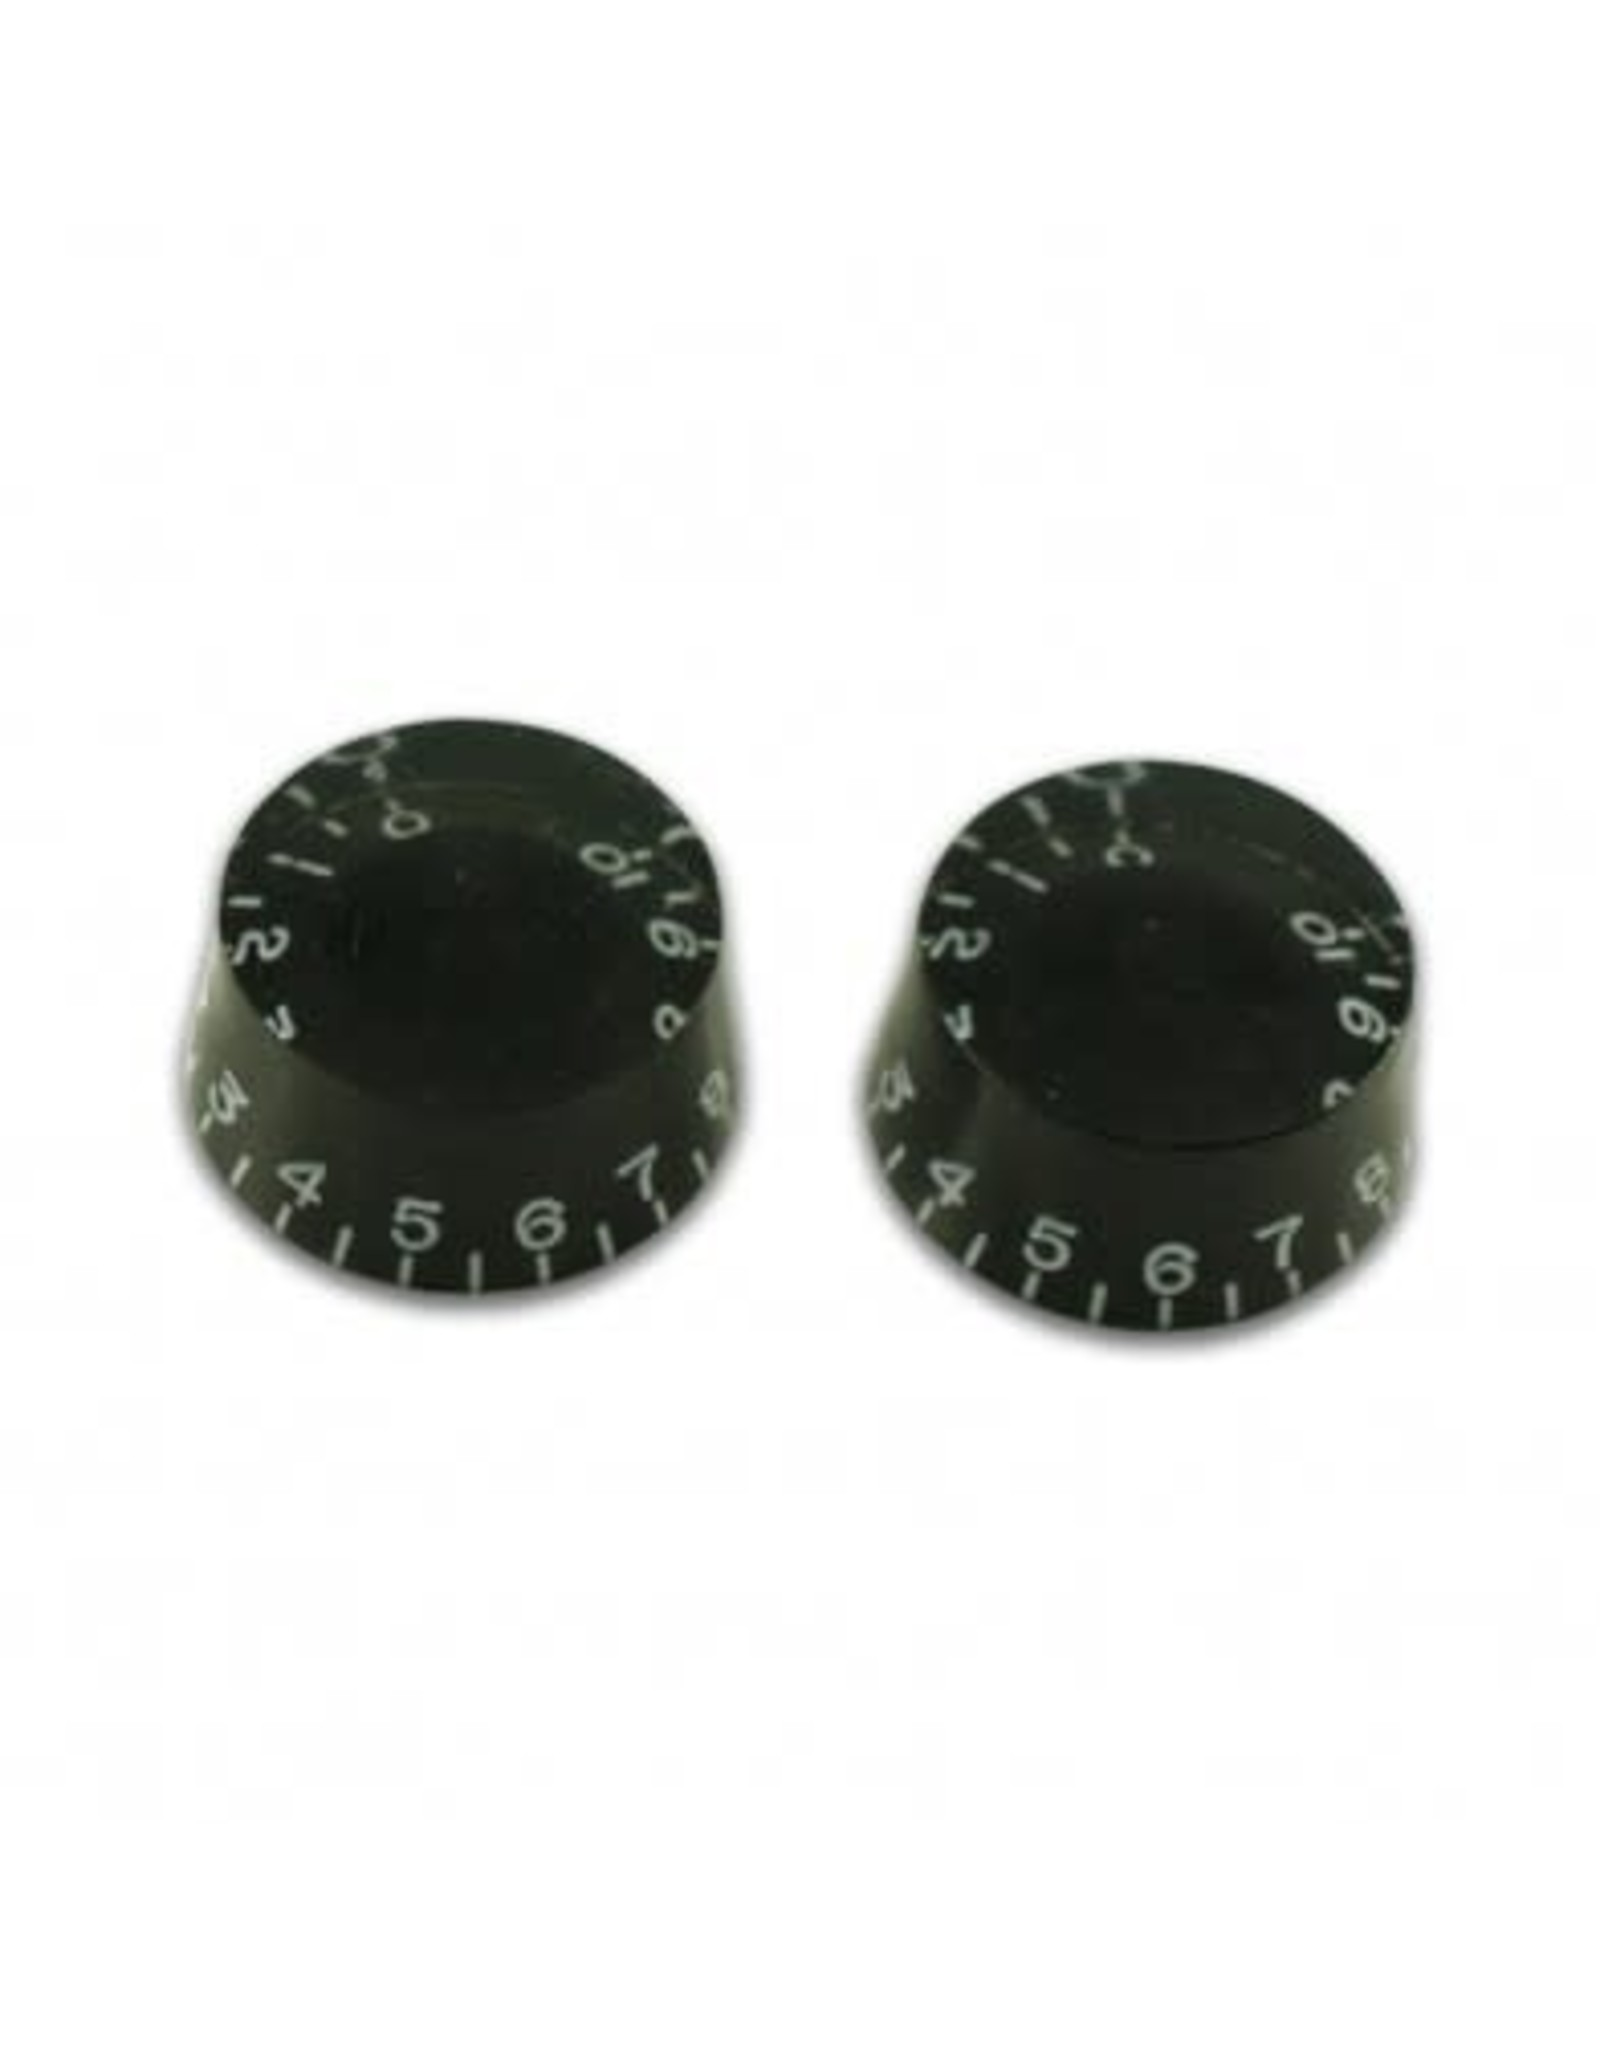 WD Music Products WD® Speed Knob Set Of 2 Metric Black